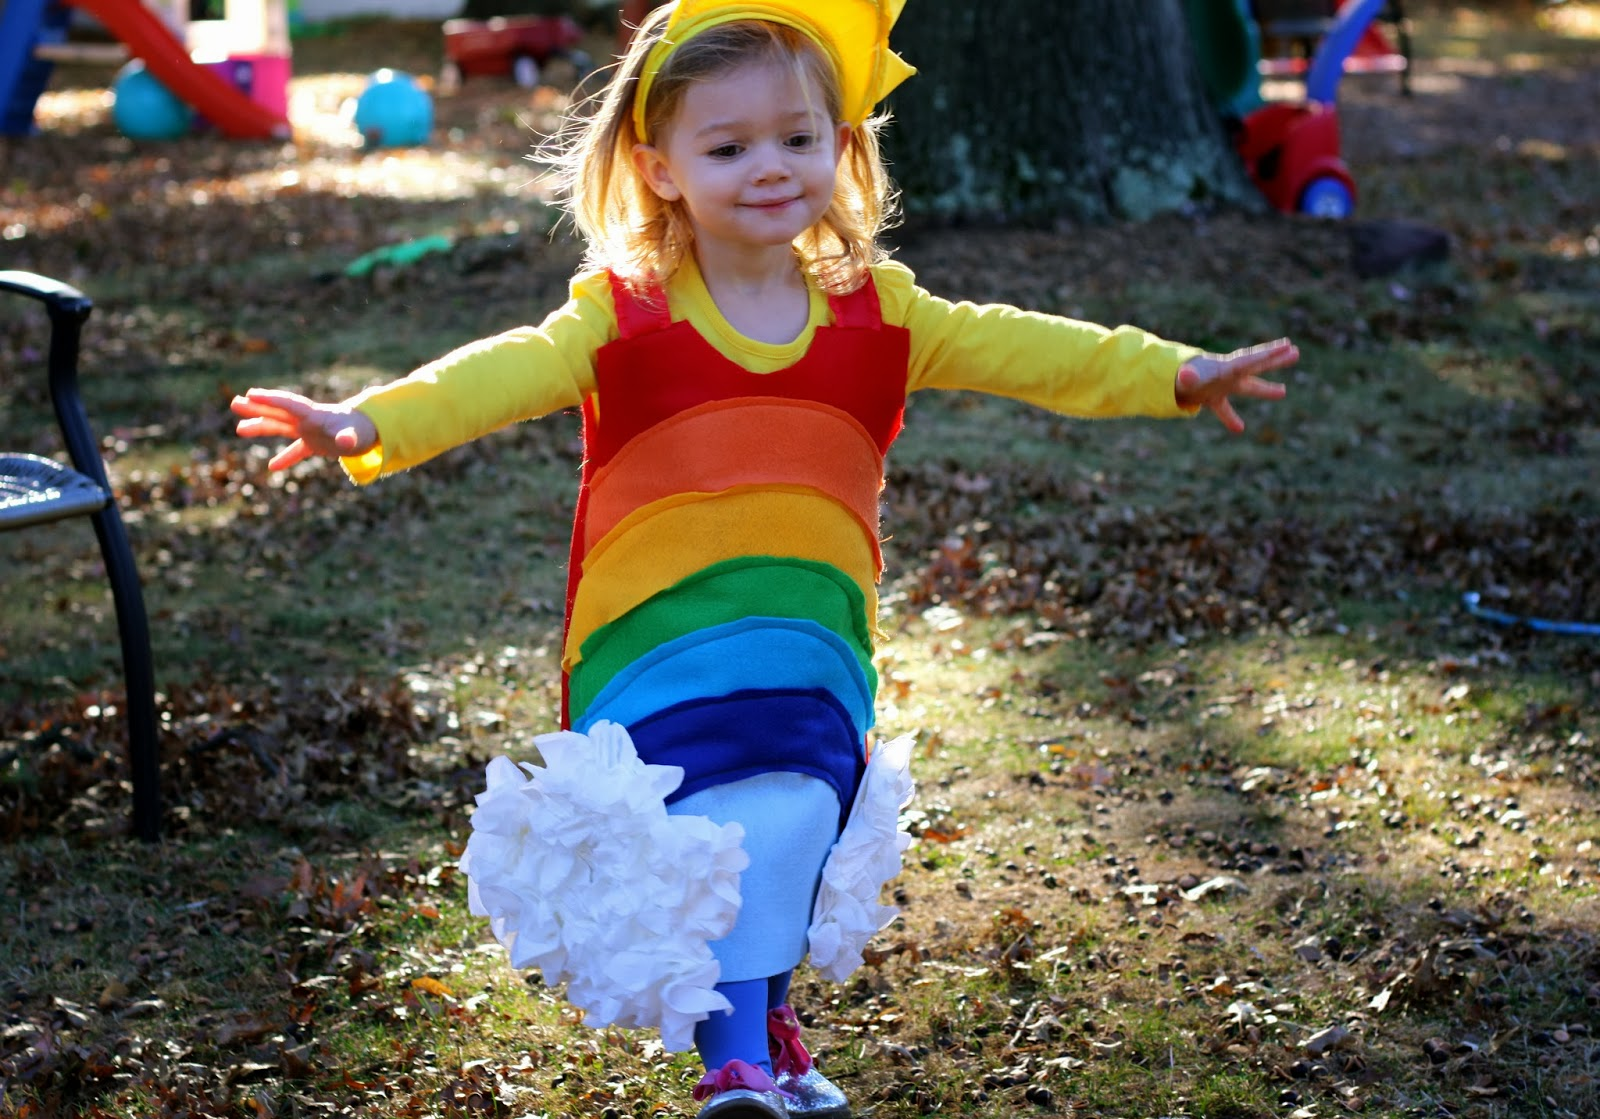 Funny Halloween Costumes For Kids 9 Free Hd Wallpaper